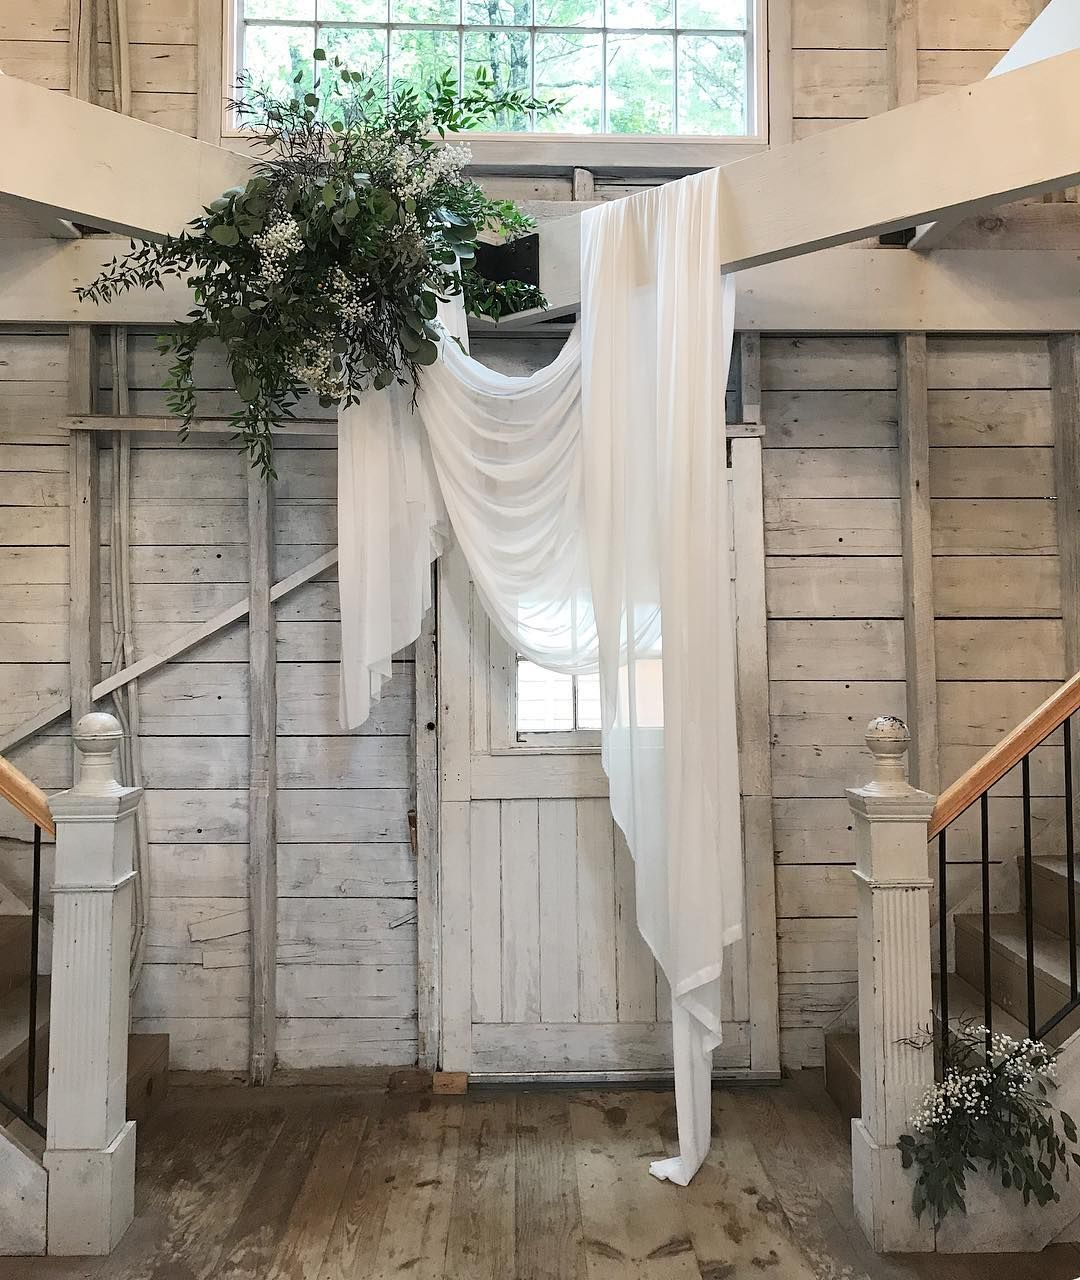 Maine Floral Shop Ltx On Instagram Note To Self Drapes Are